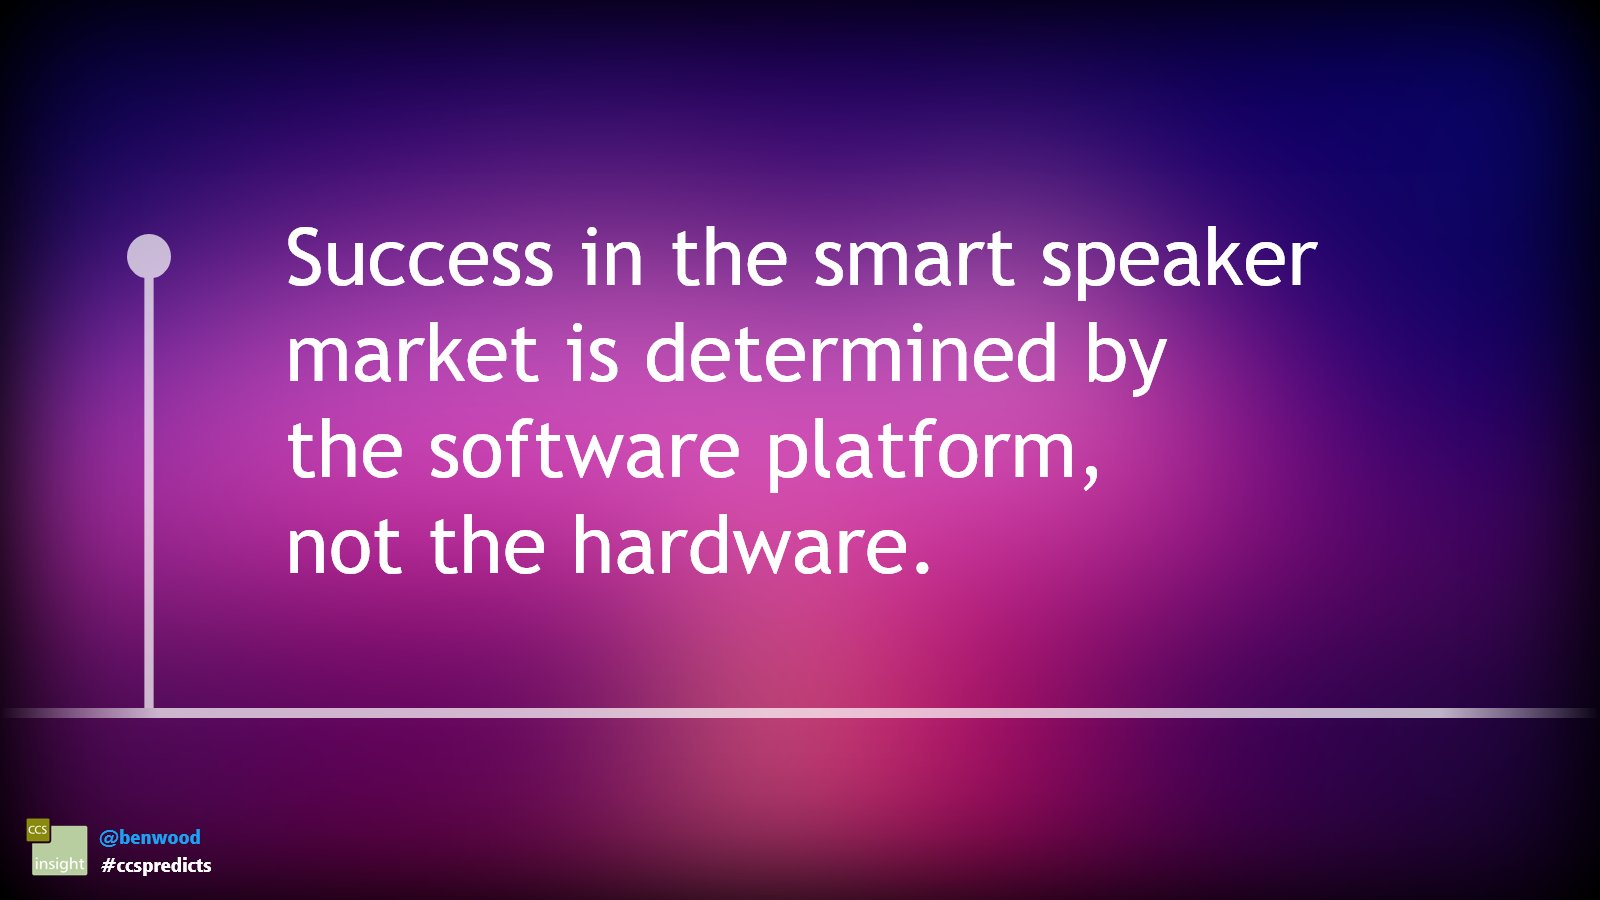 Success in the smart speaker market is determined by the software platform, not the hardware #ccspredicts https://t.co/lfUBBiDver